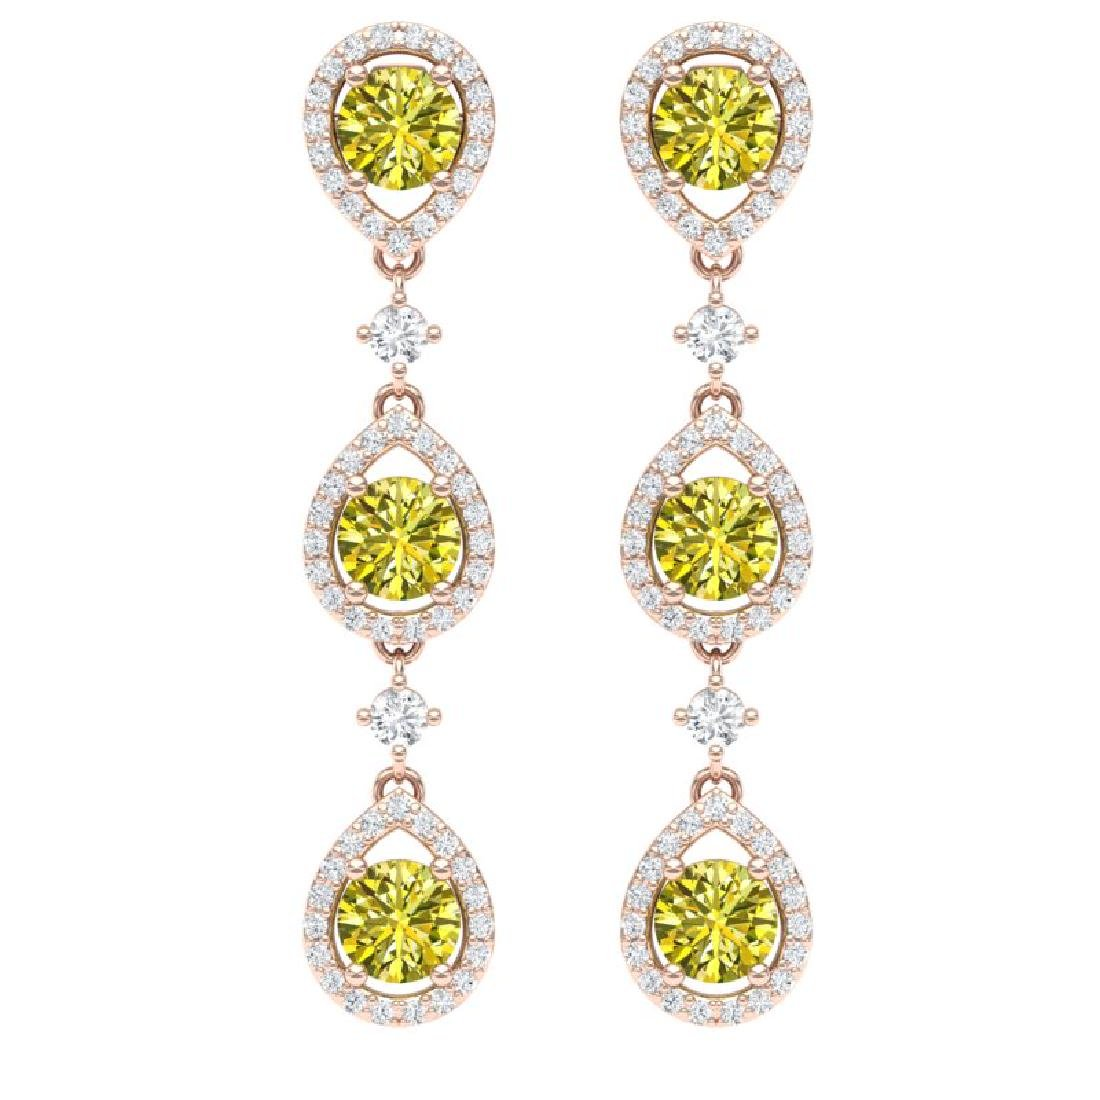 5.11 CTW Fancy Yellow SI Diamond Earrings 18K Rose Gold